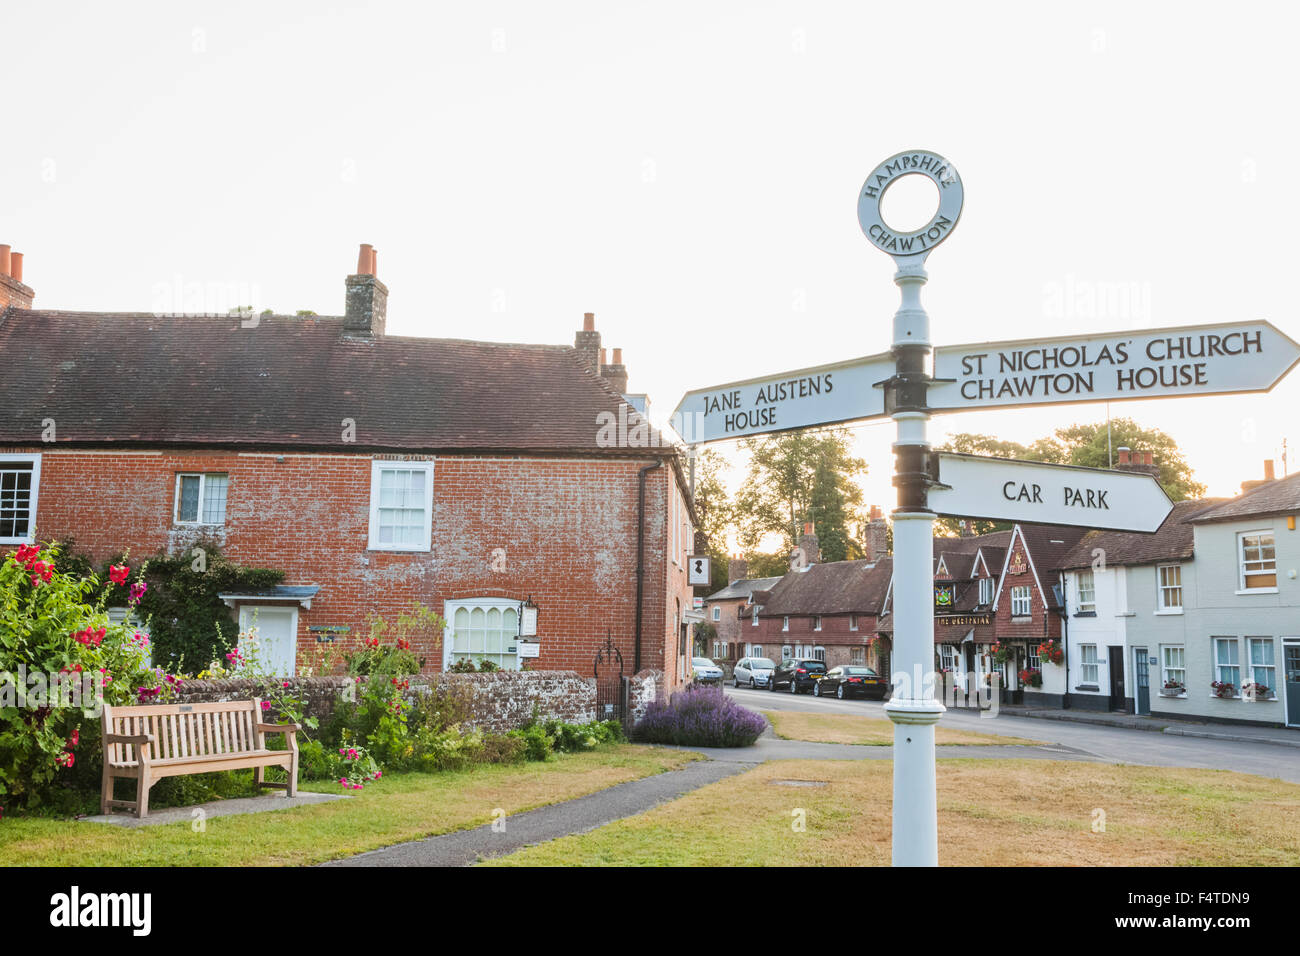 England, Hampshire, Chawton, Road Sign and Jane Austen's House - Stock Image